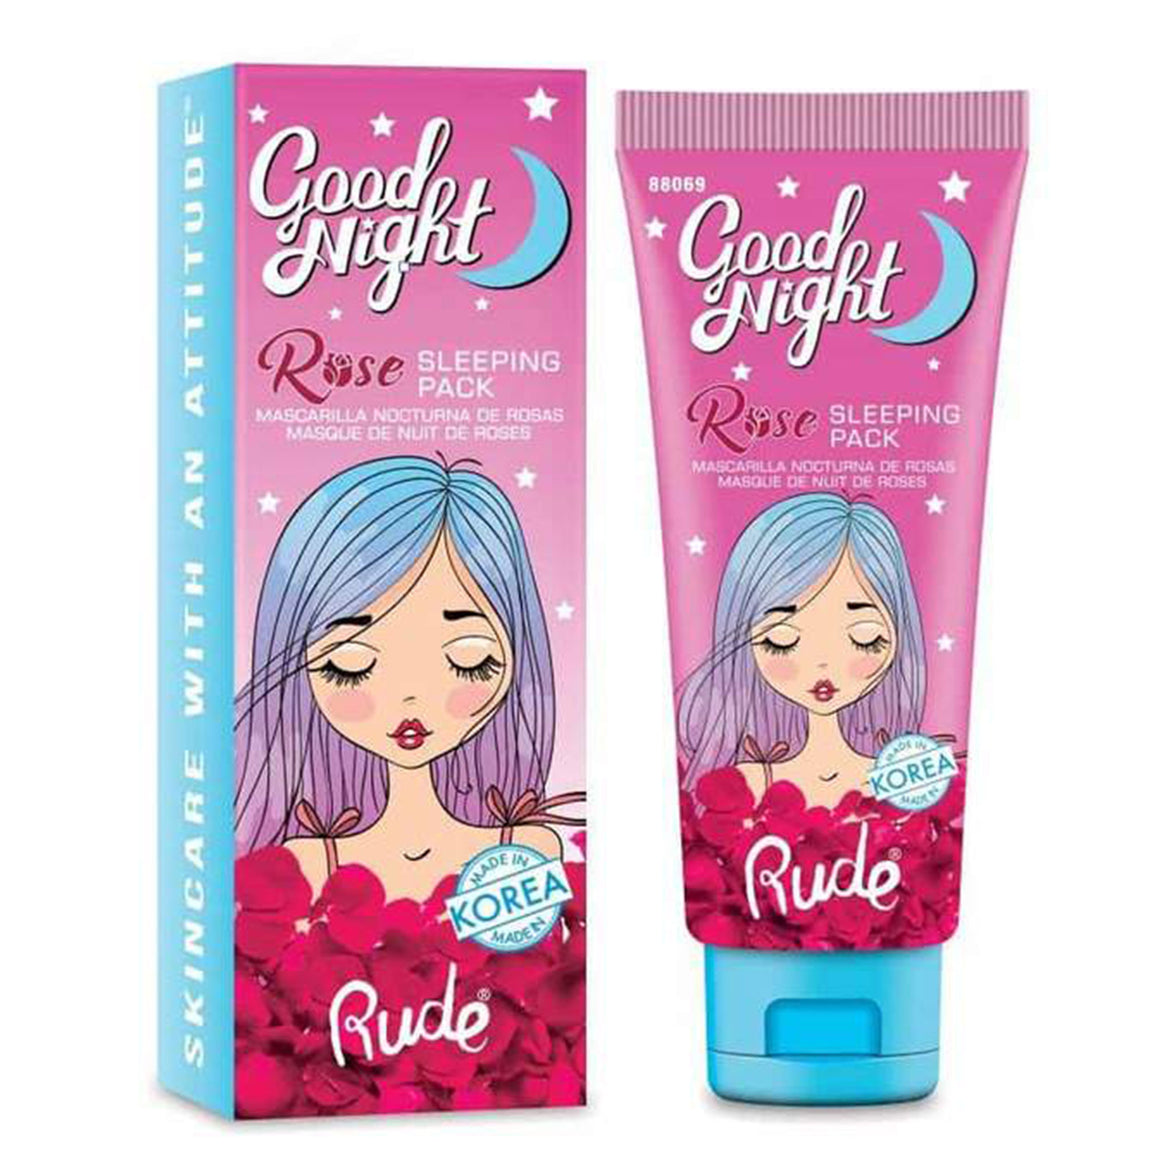 RUDE - Good Night Rose Sleeping Pack